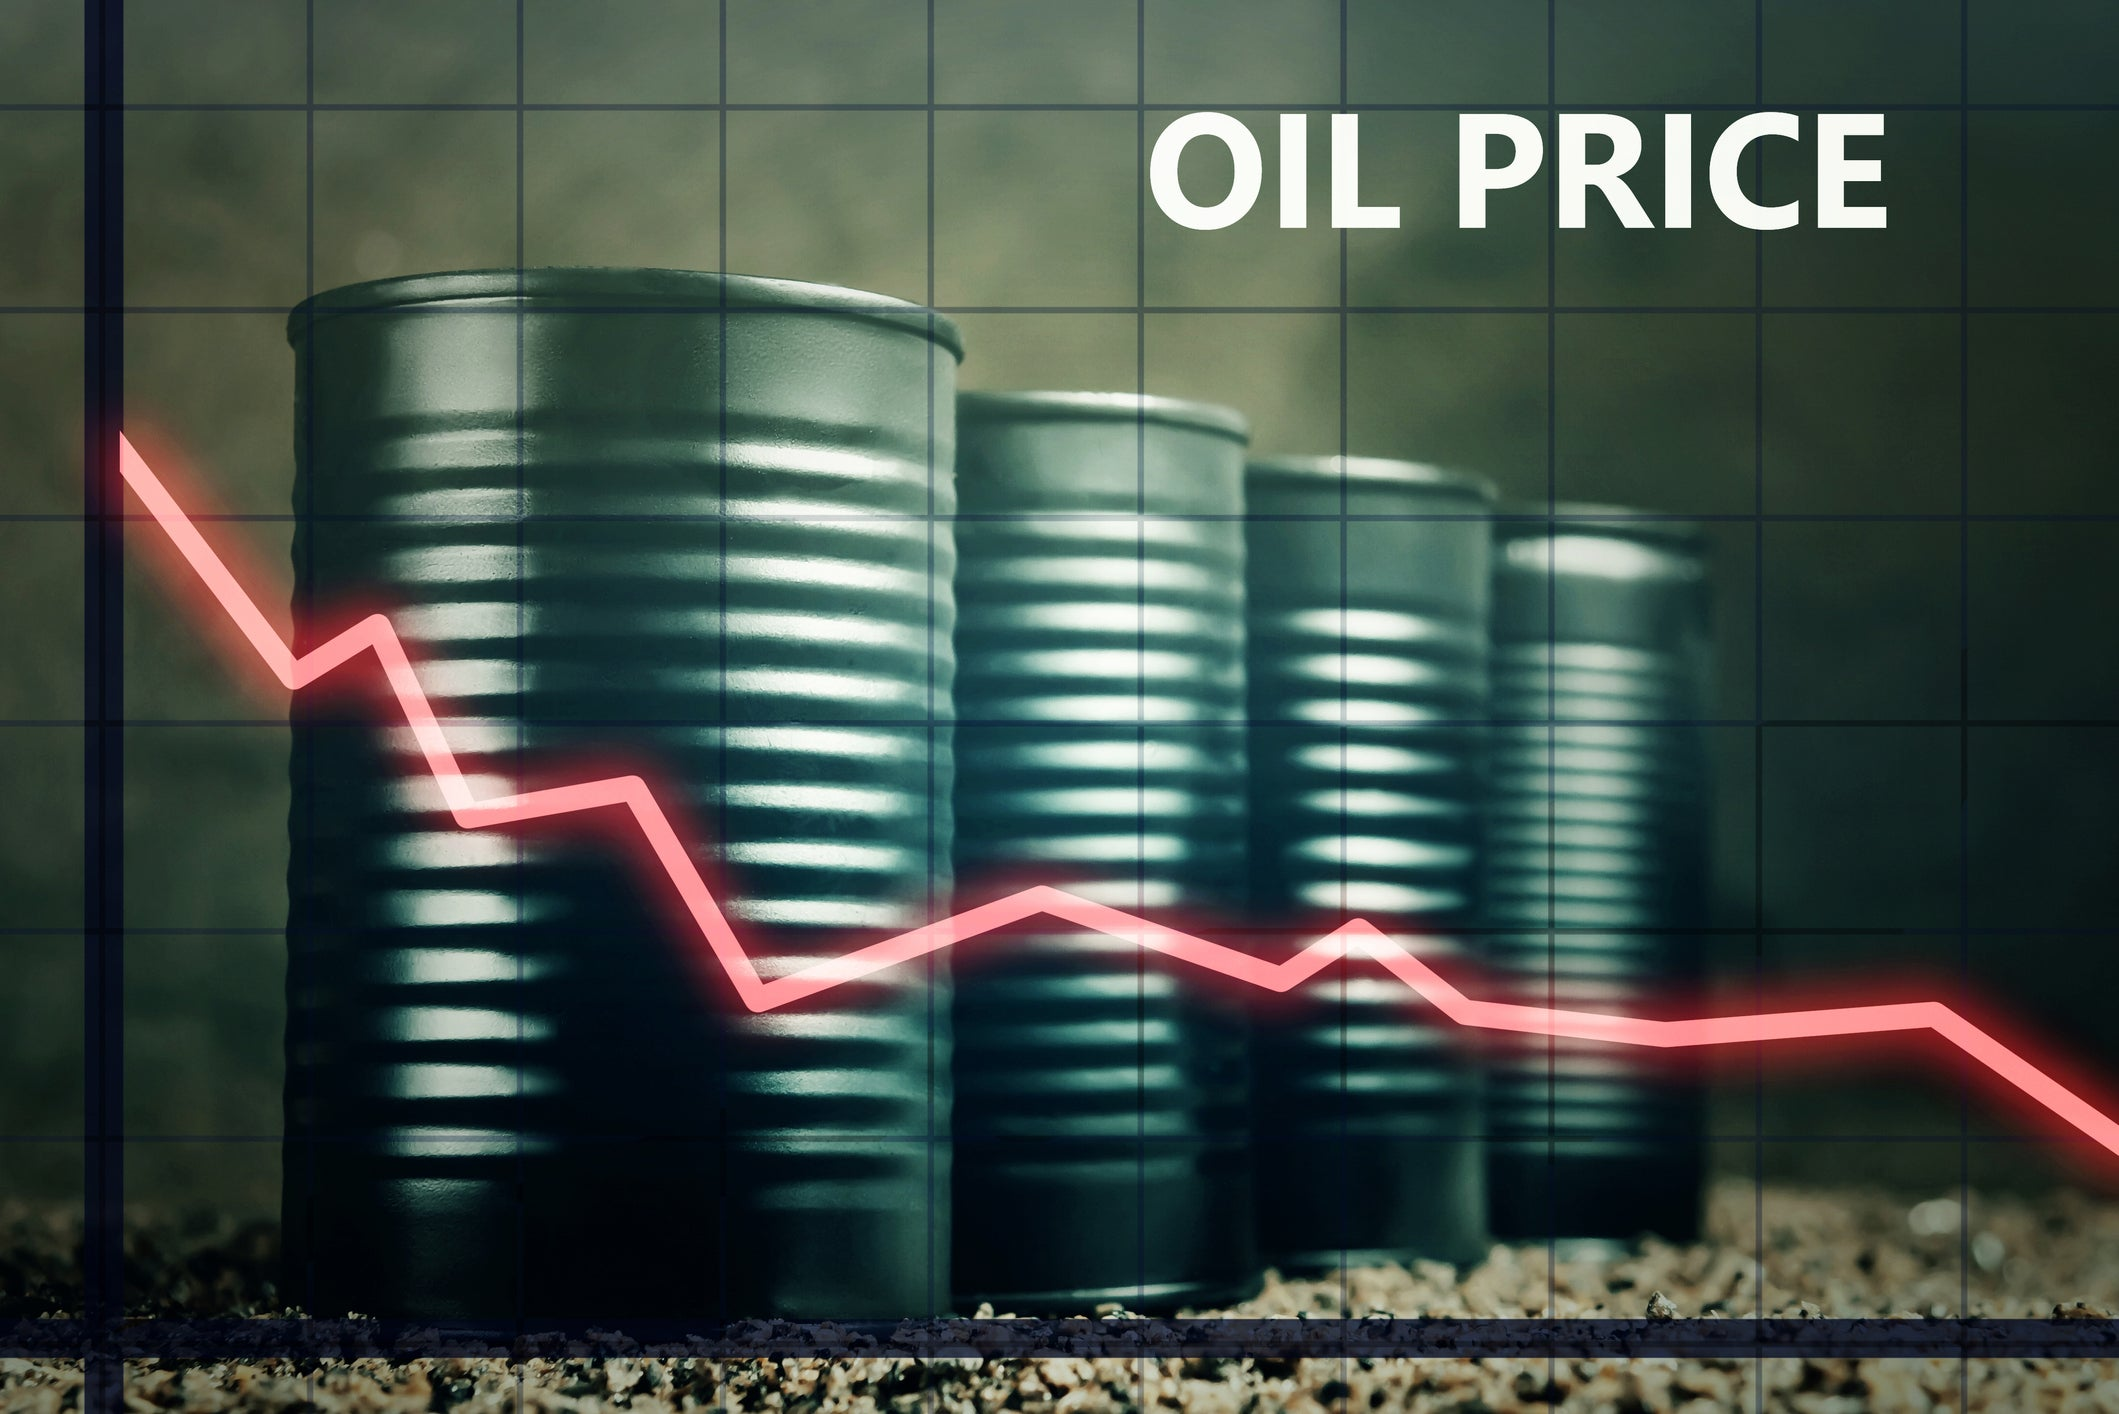 3 Oil Stocks That Could Go Bankrupt in 2020 | The Motley Fool